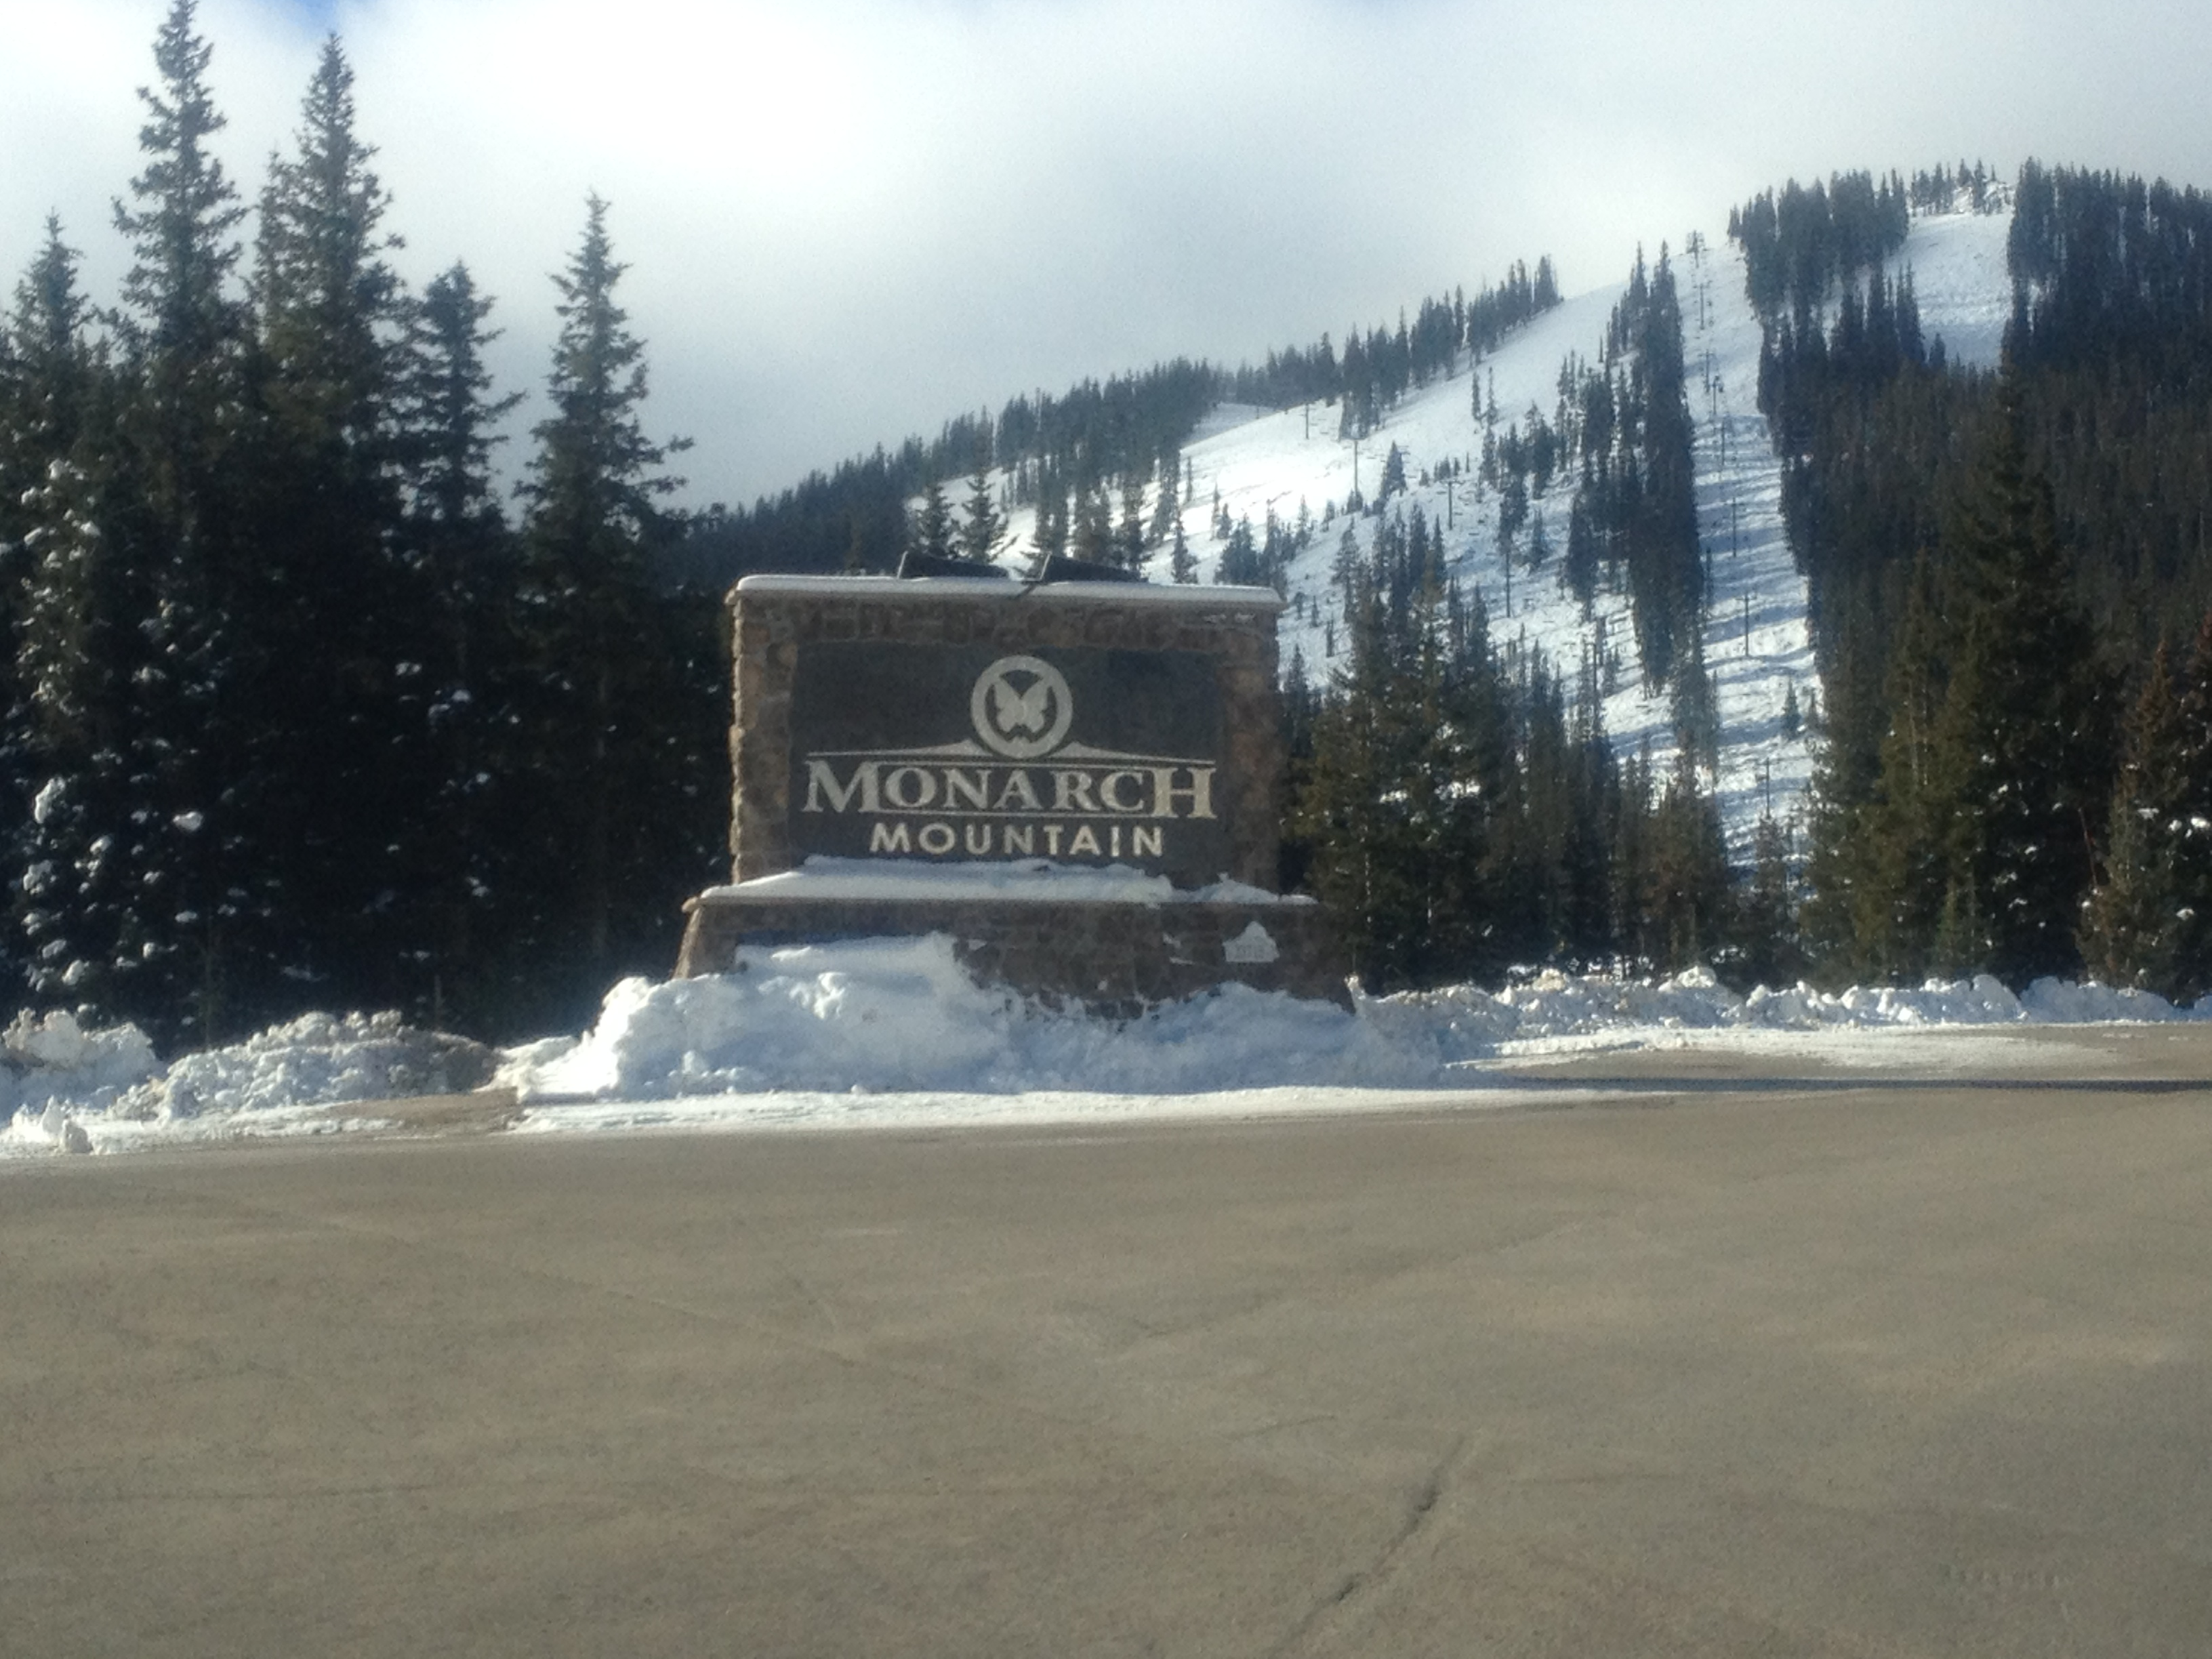 We're here! The turnoff for the resort is just east of Monarch Pass on U.S. 50.